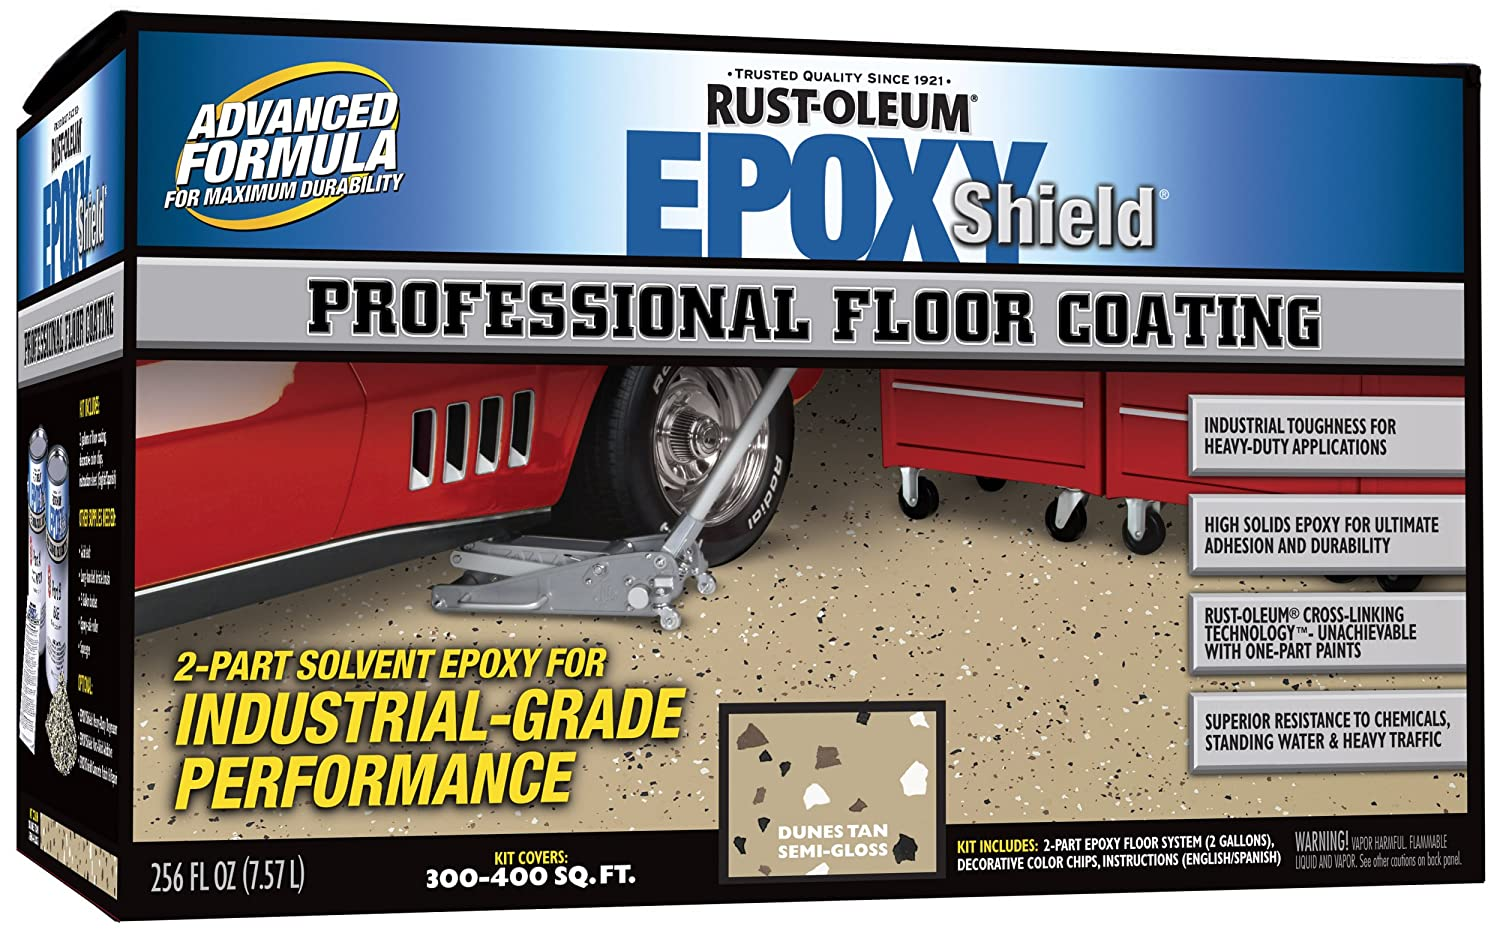 Rustoleum Garage Floor Coating Kit Photo Album Watch Out Theres A